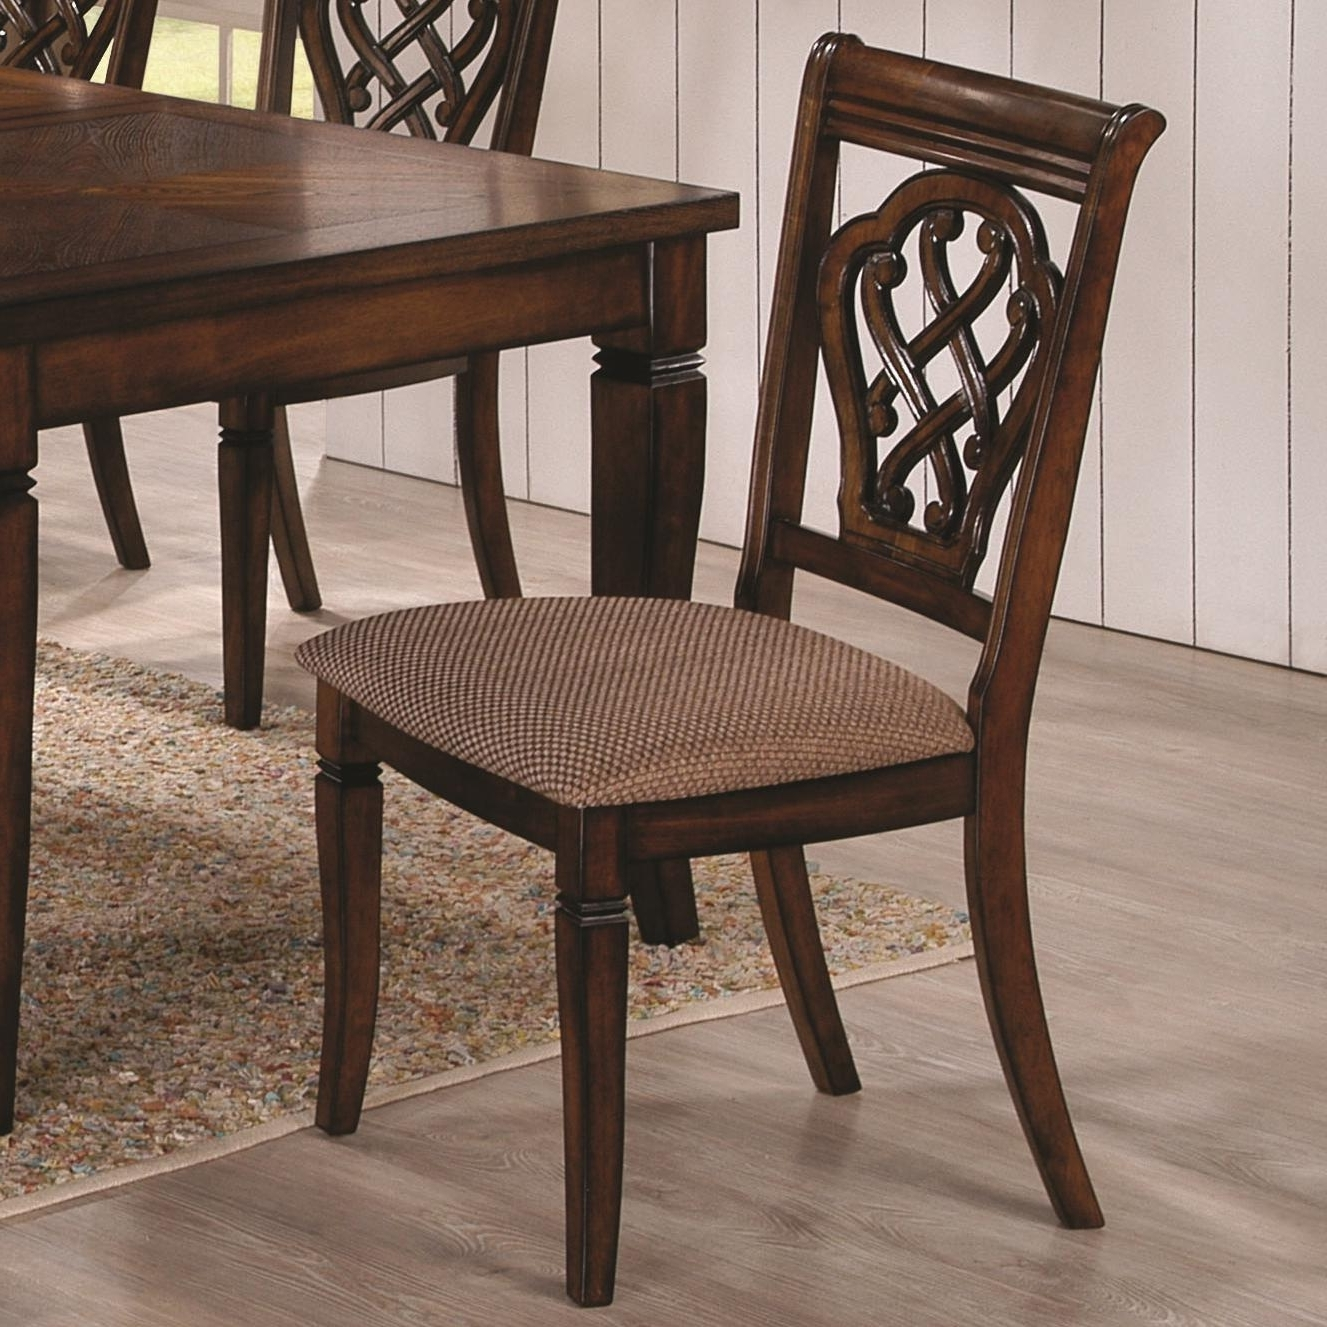 Most Recent Hayden Dining Tables With Regard To 2 Coaster Furniture Hayden Brown Dining Chairs (View 16 of 25)